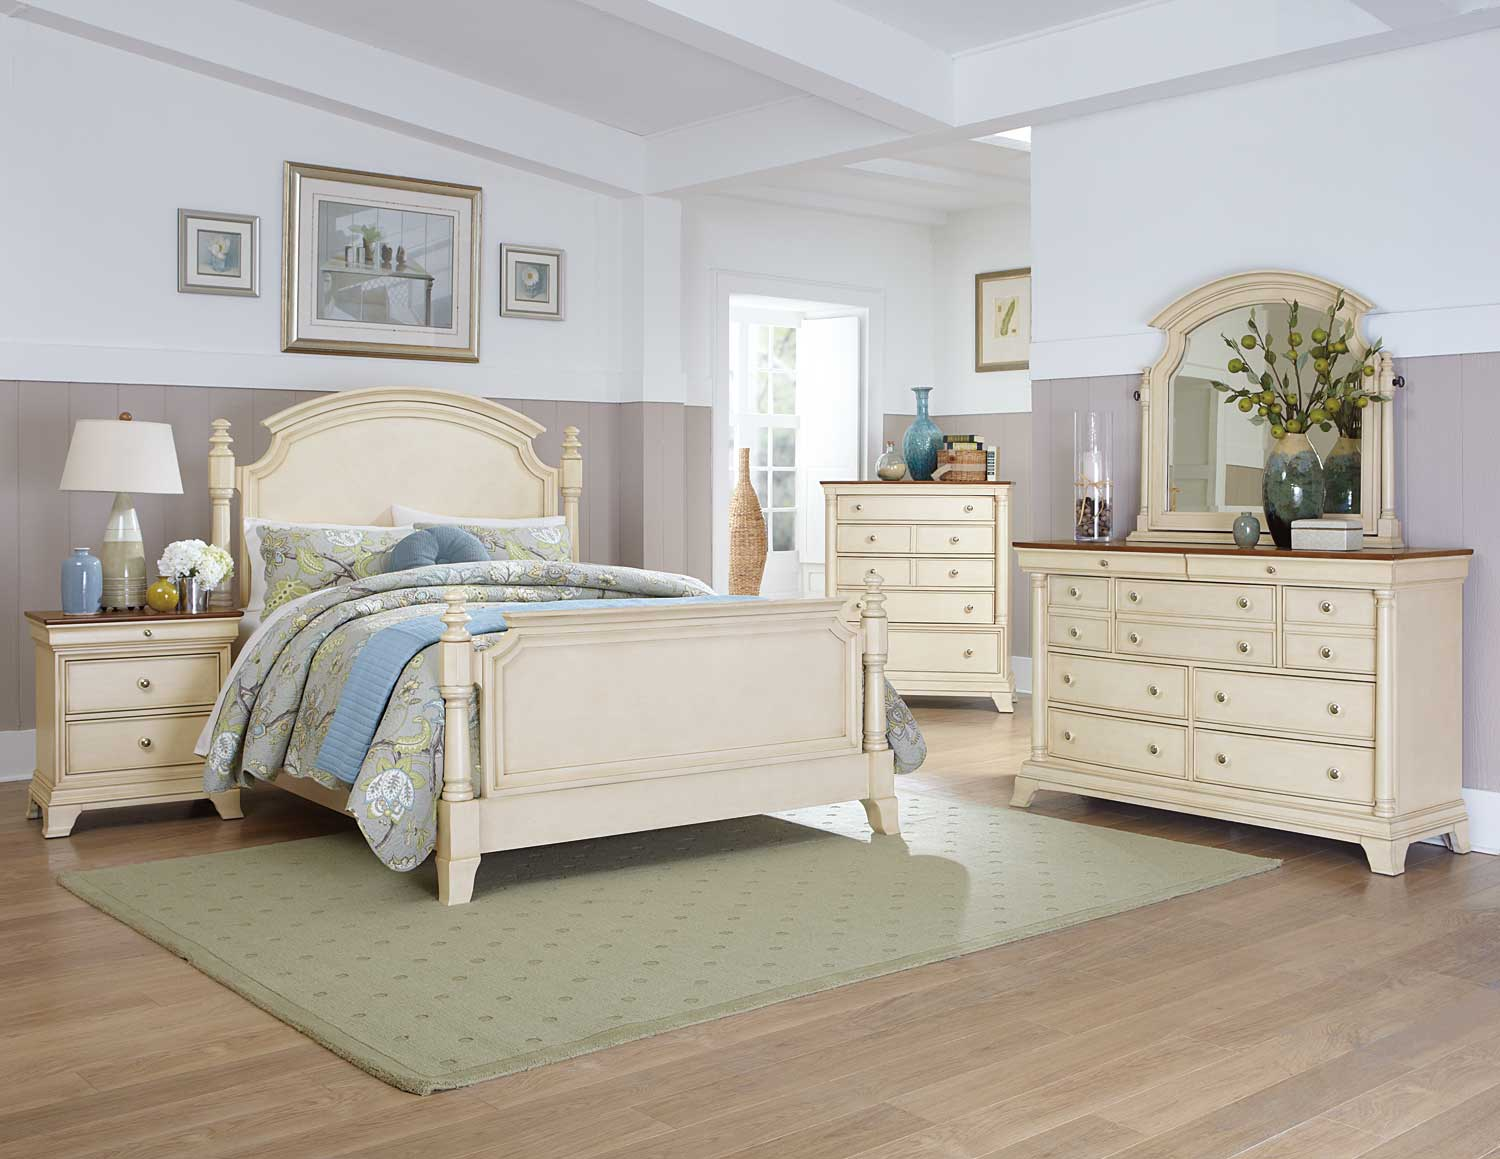 Homelegance inglewood ii bedroom set white b1402w bed for White full bedroom set